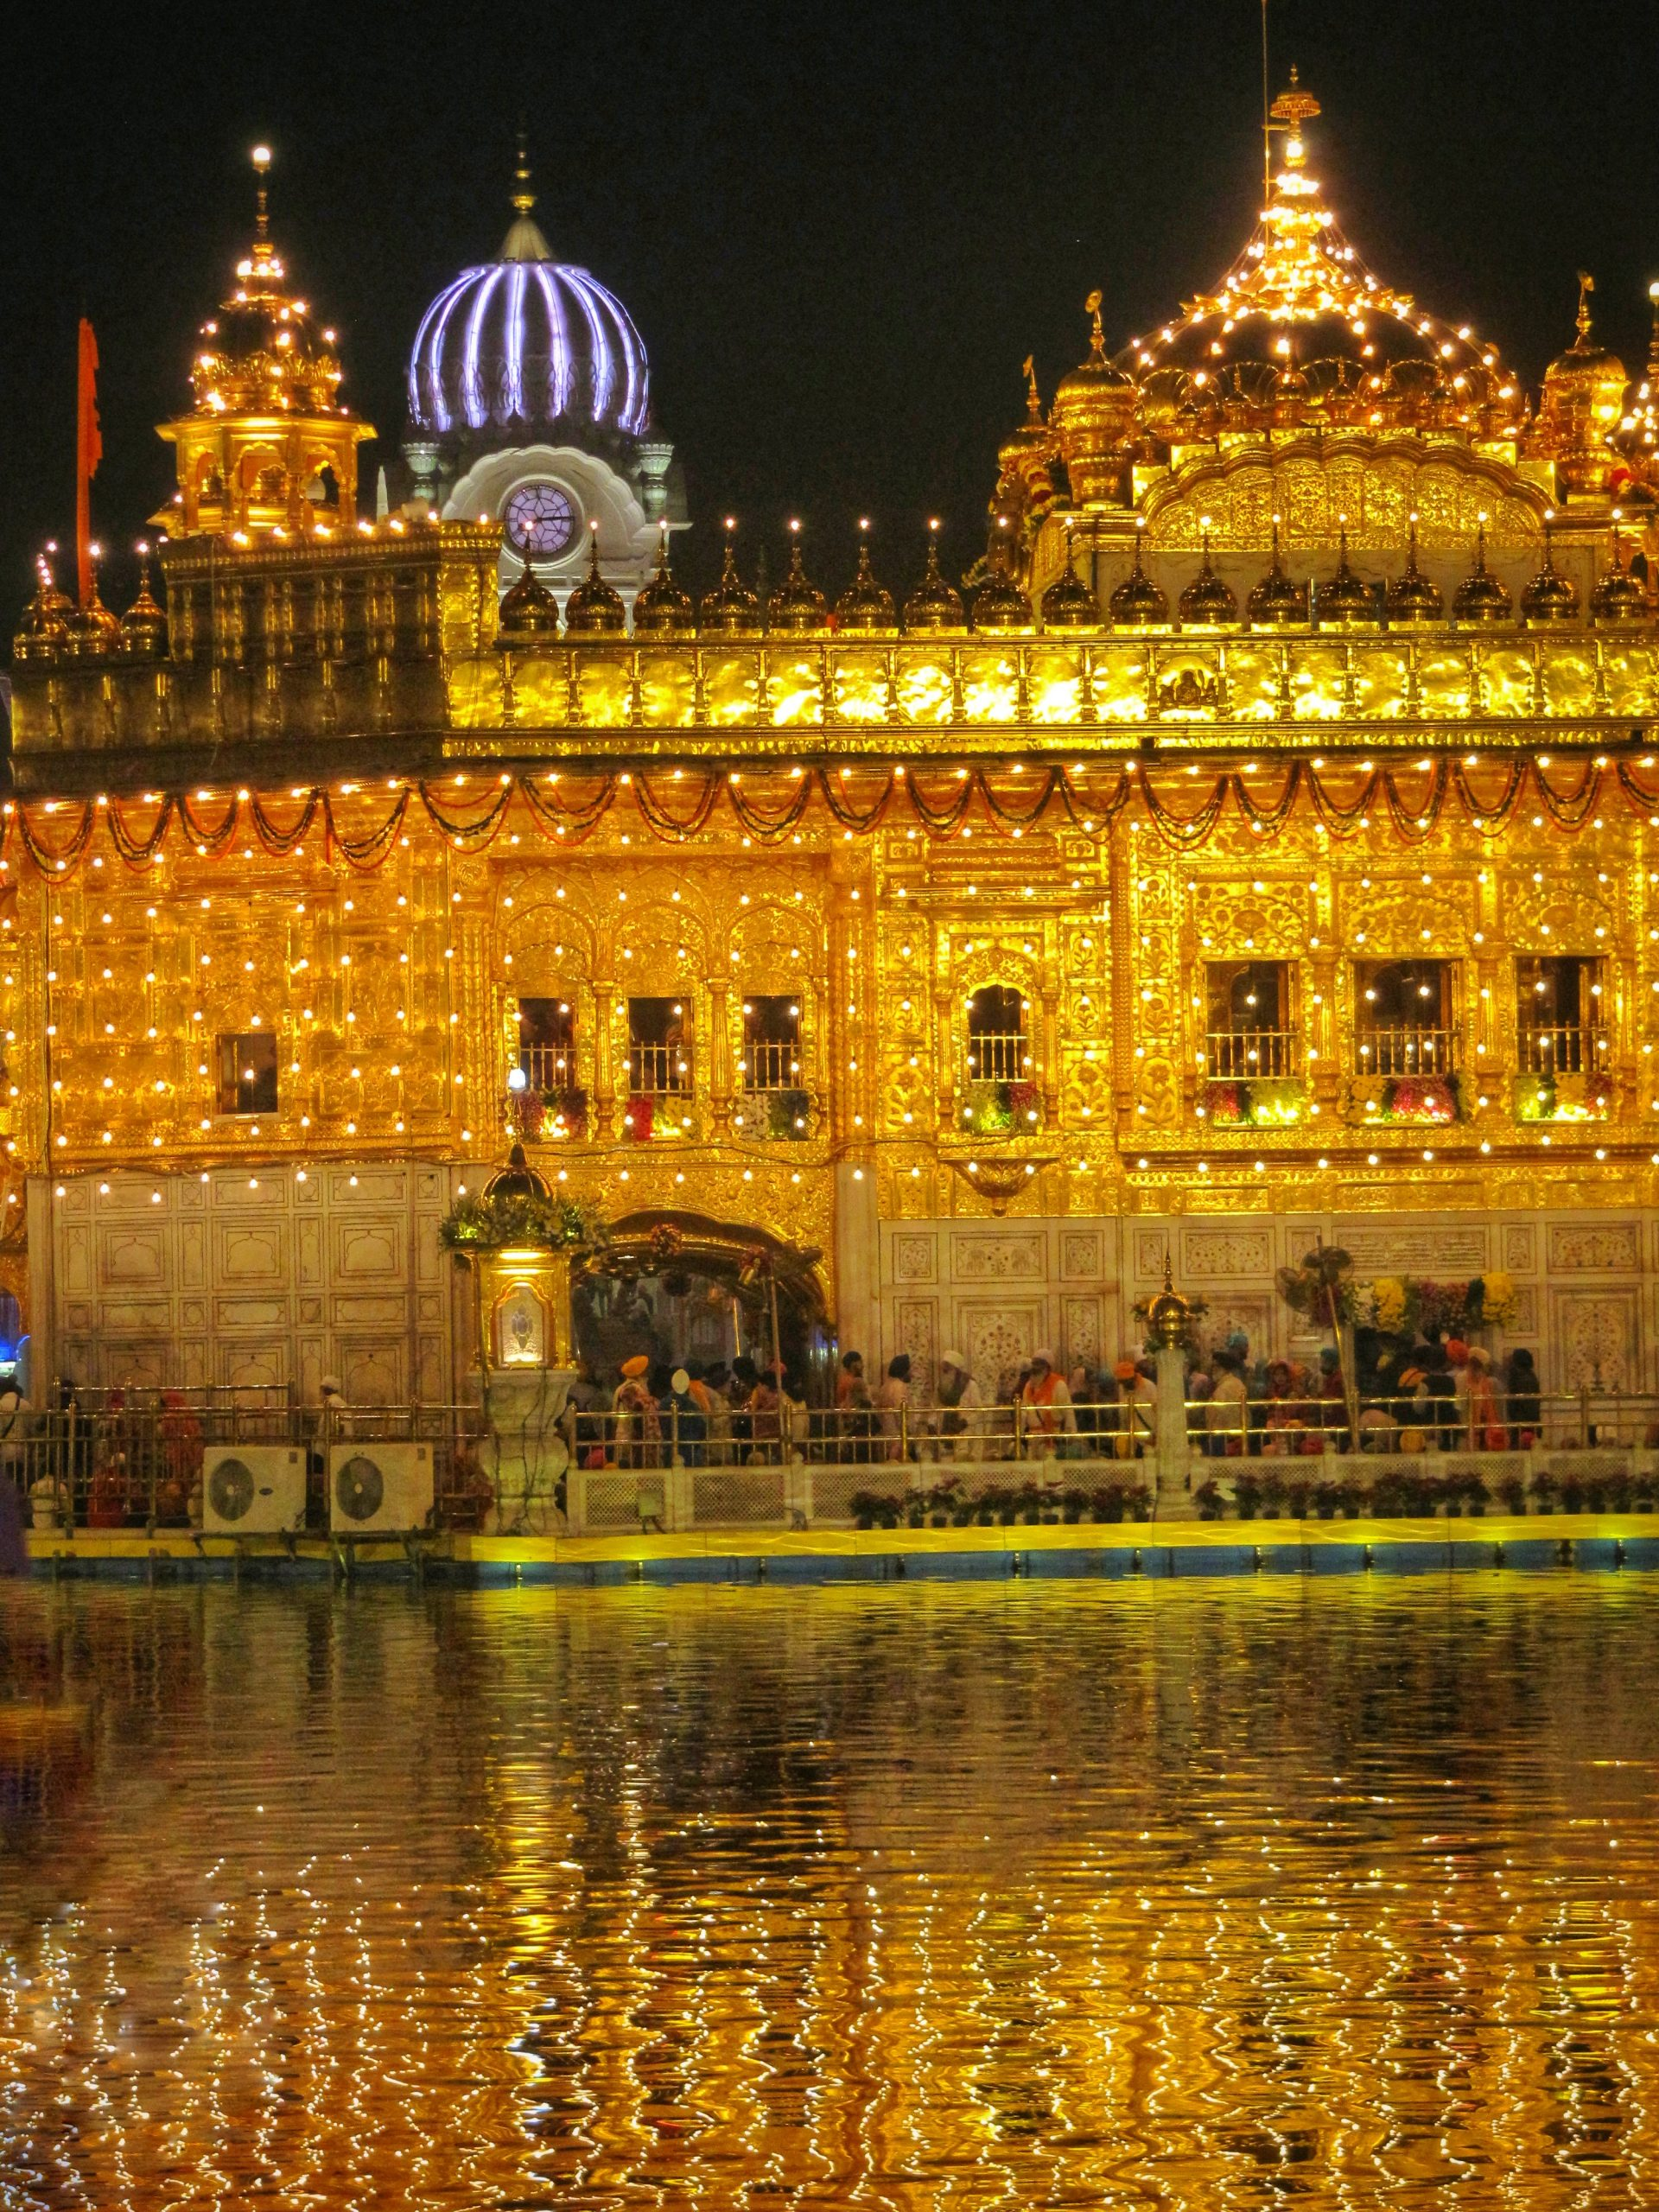 Harmandir Sahib in Punjab, India